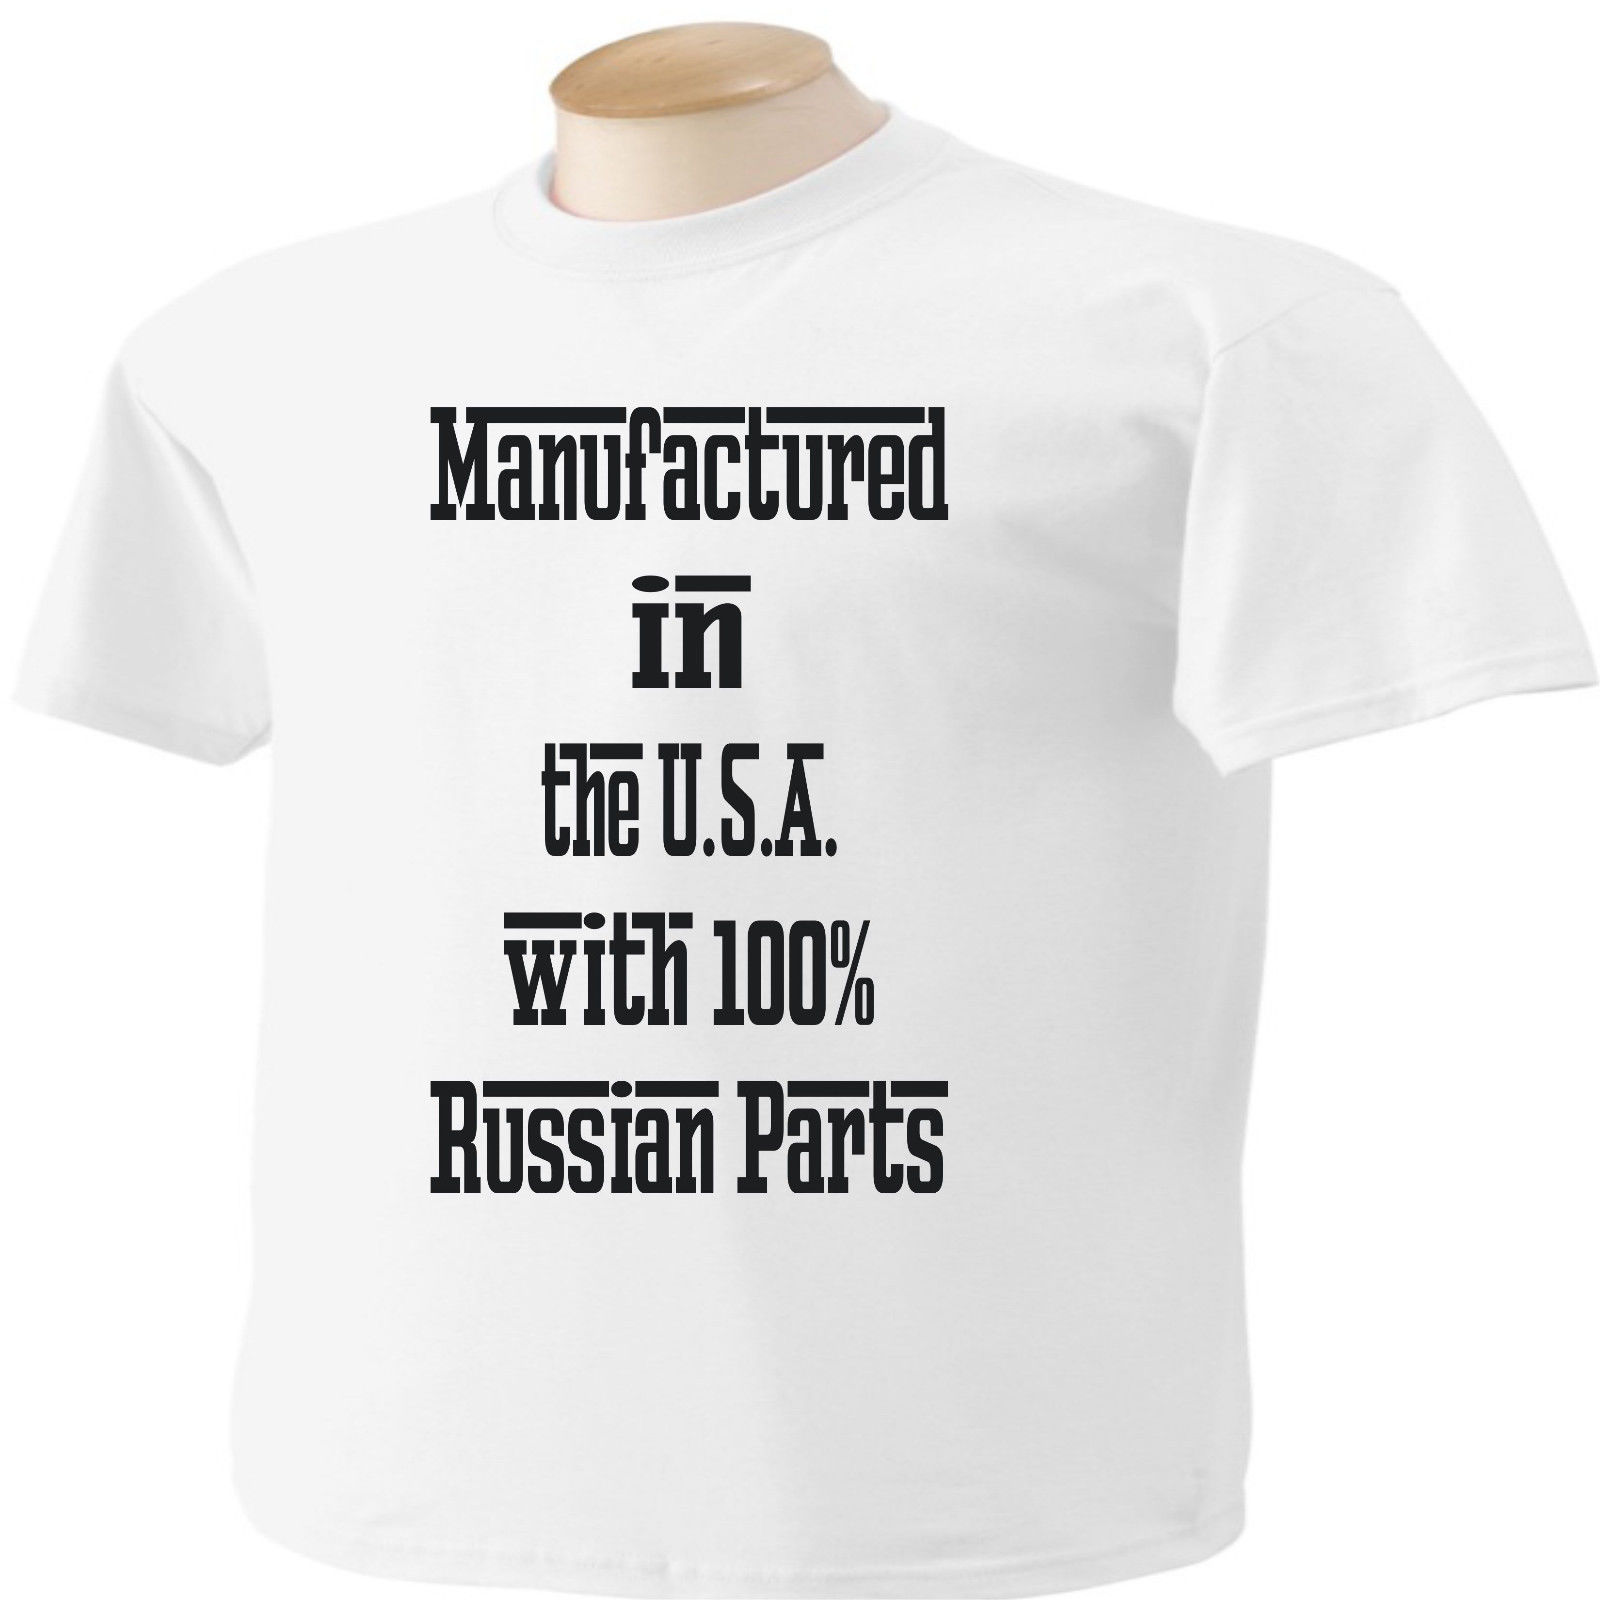 Manufactured in the USA with 100 Russian Parts T Shirt Russia Free shipping Harajuku Tops t shirt Fashion Classic Unique in T Shirts from Men 39 s Clothing